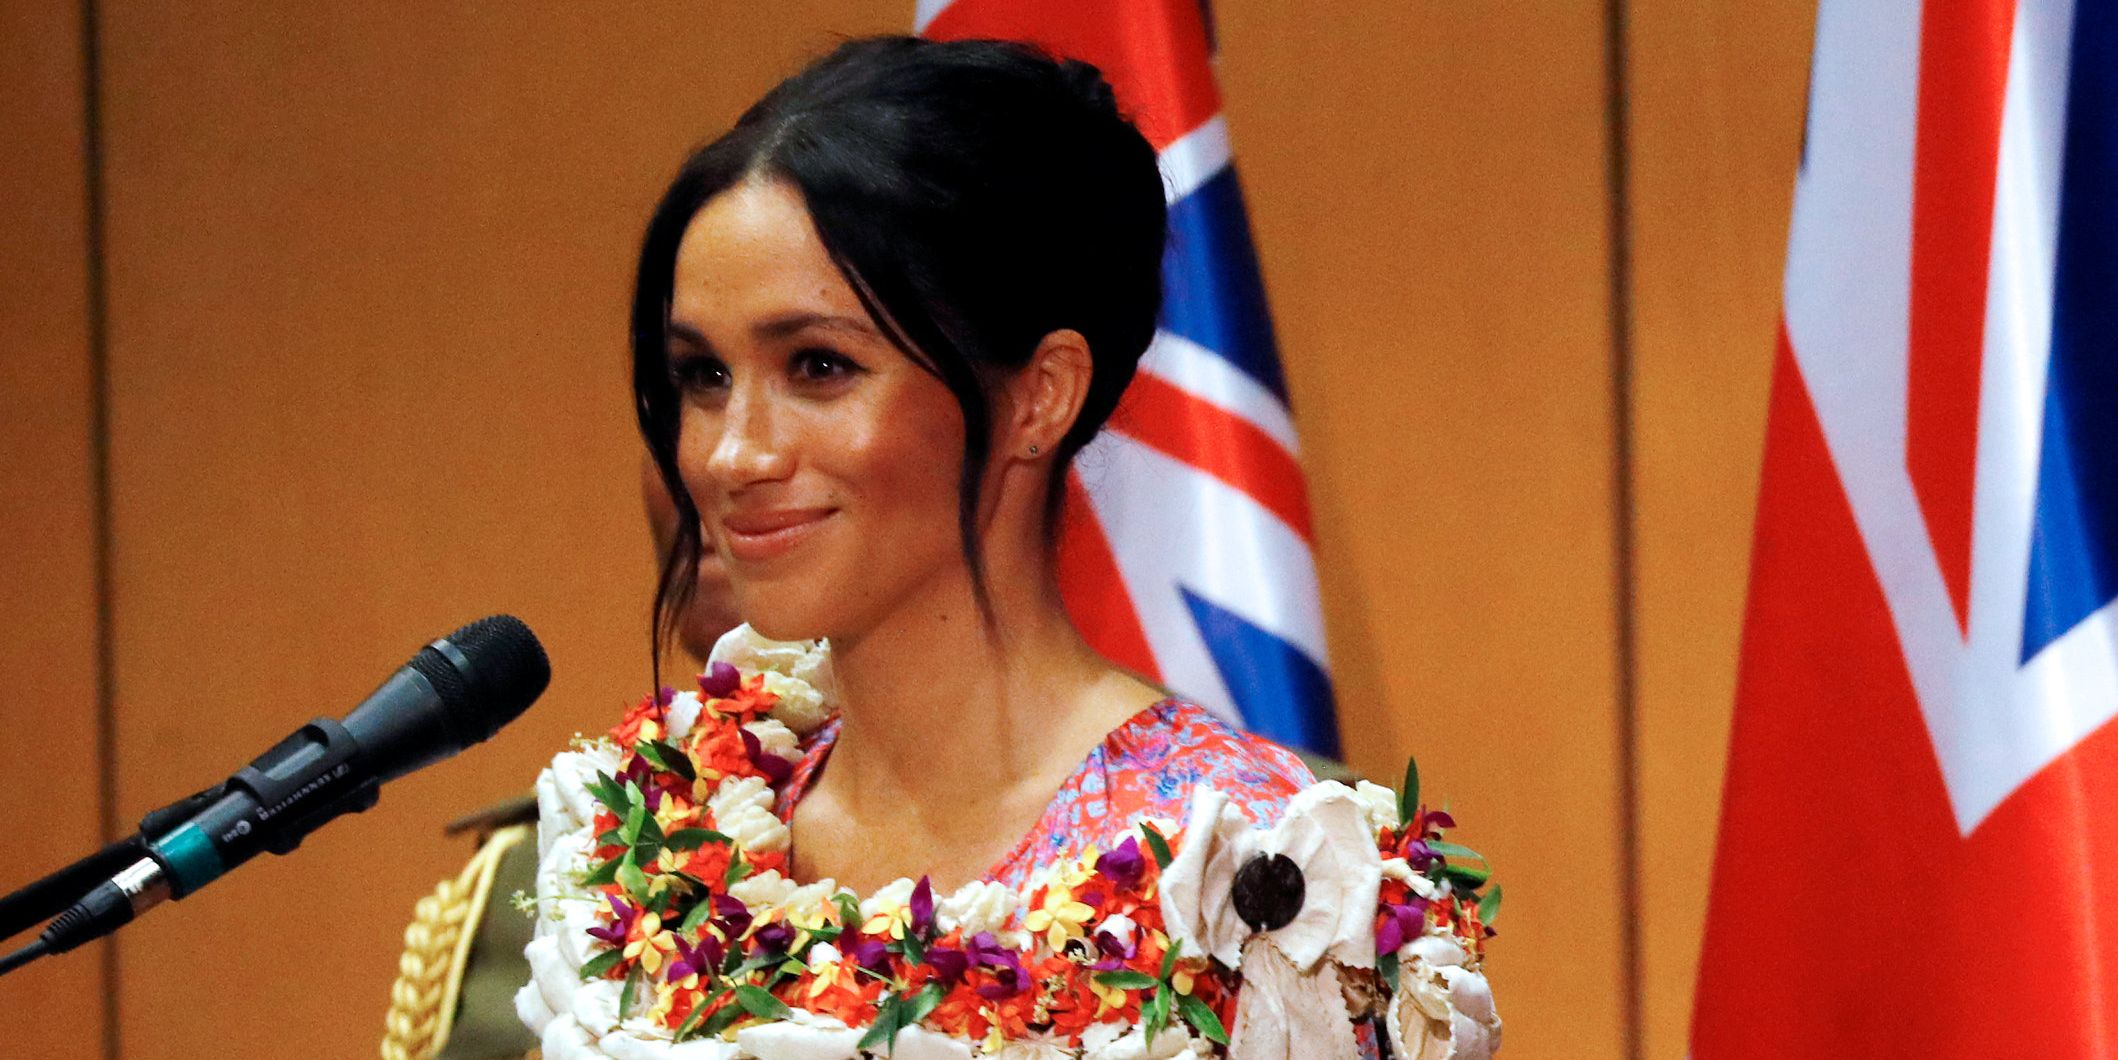 Meghan Markle at the University of South Pacific in Fiji